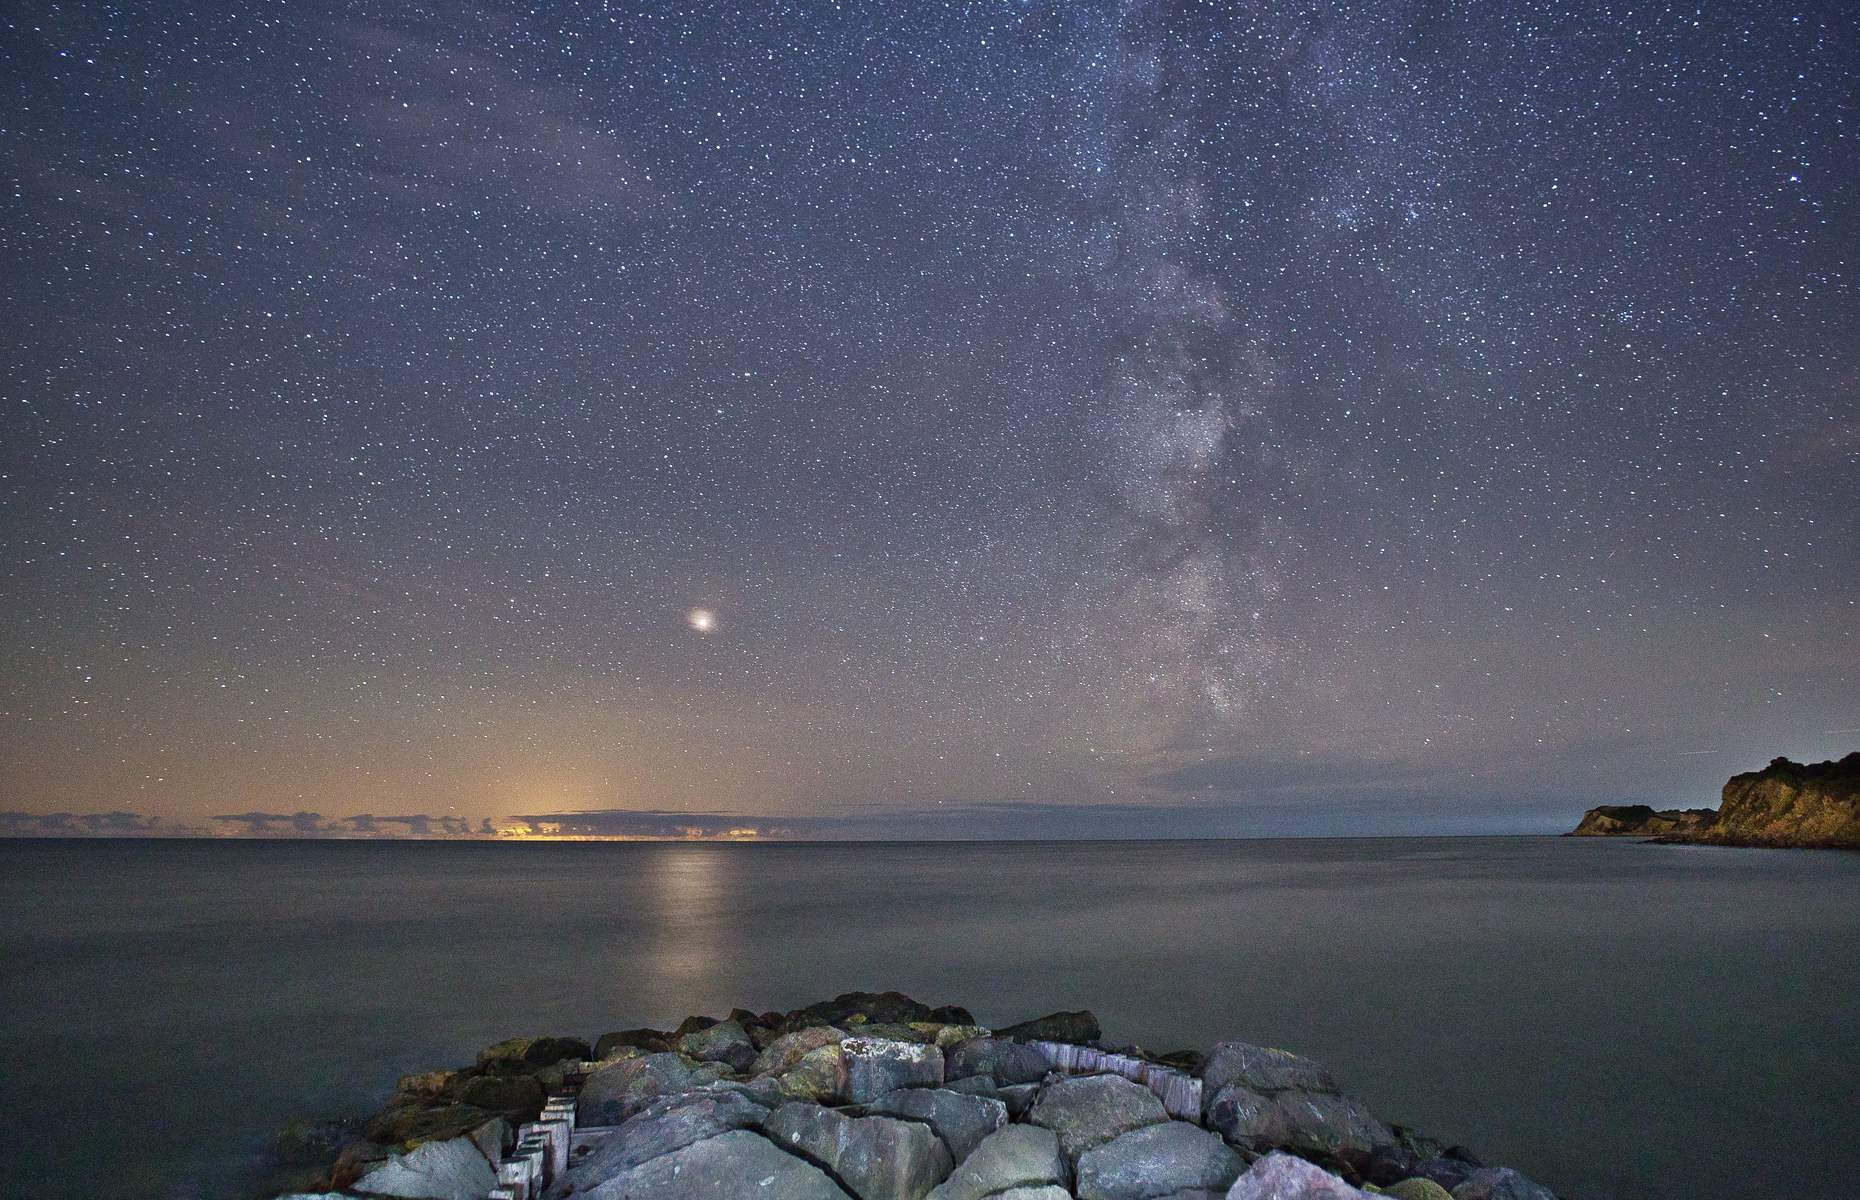 Starry night in the Isle of Wight (Image: TwilightandTime/Shutterstock)